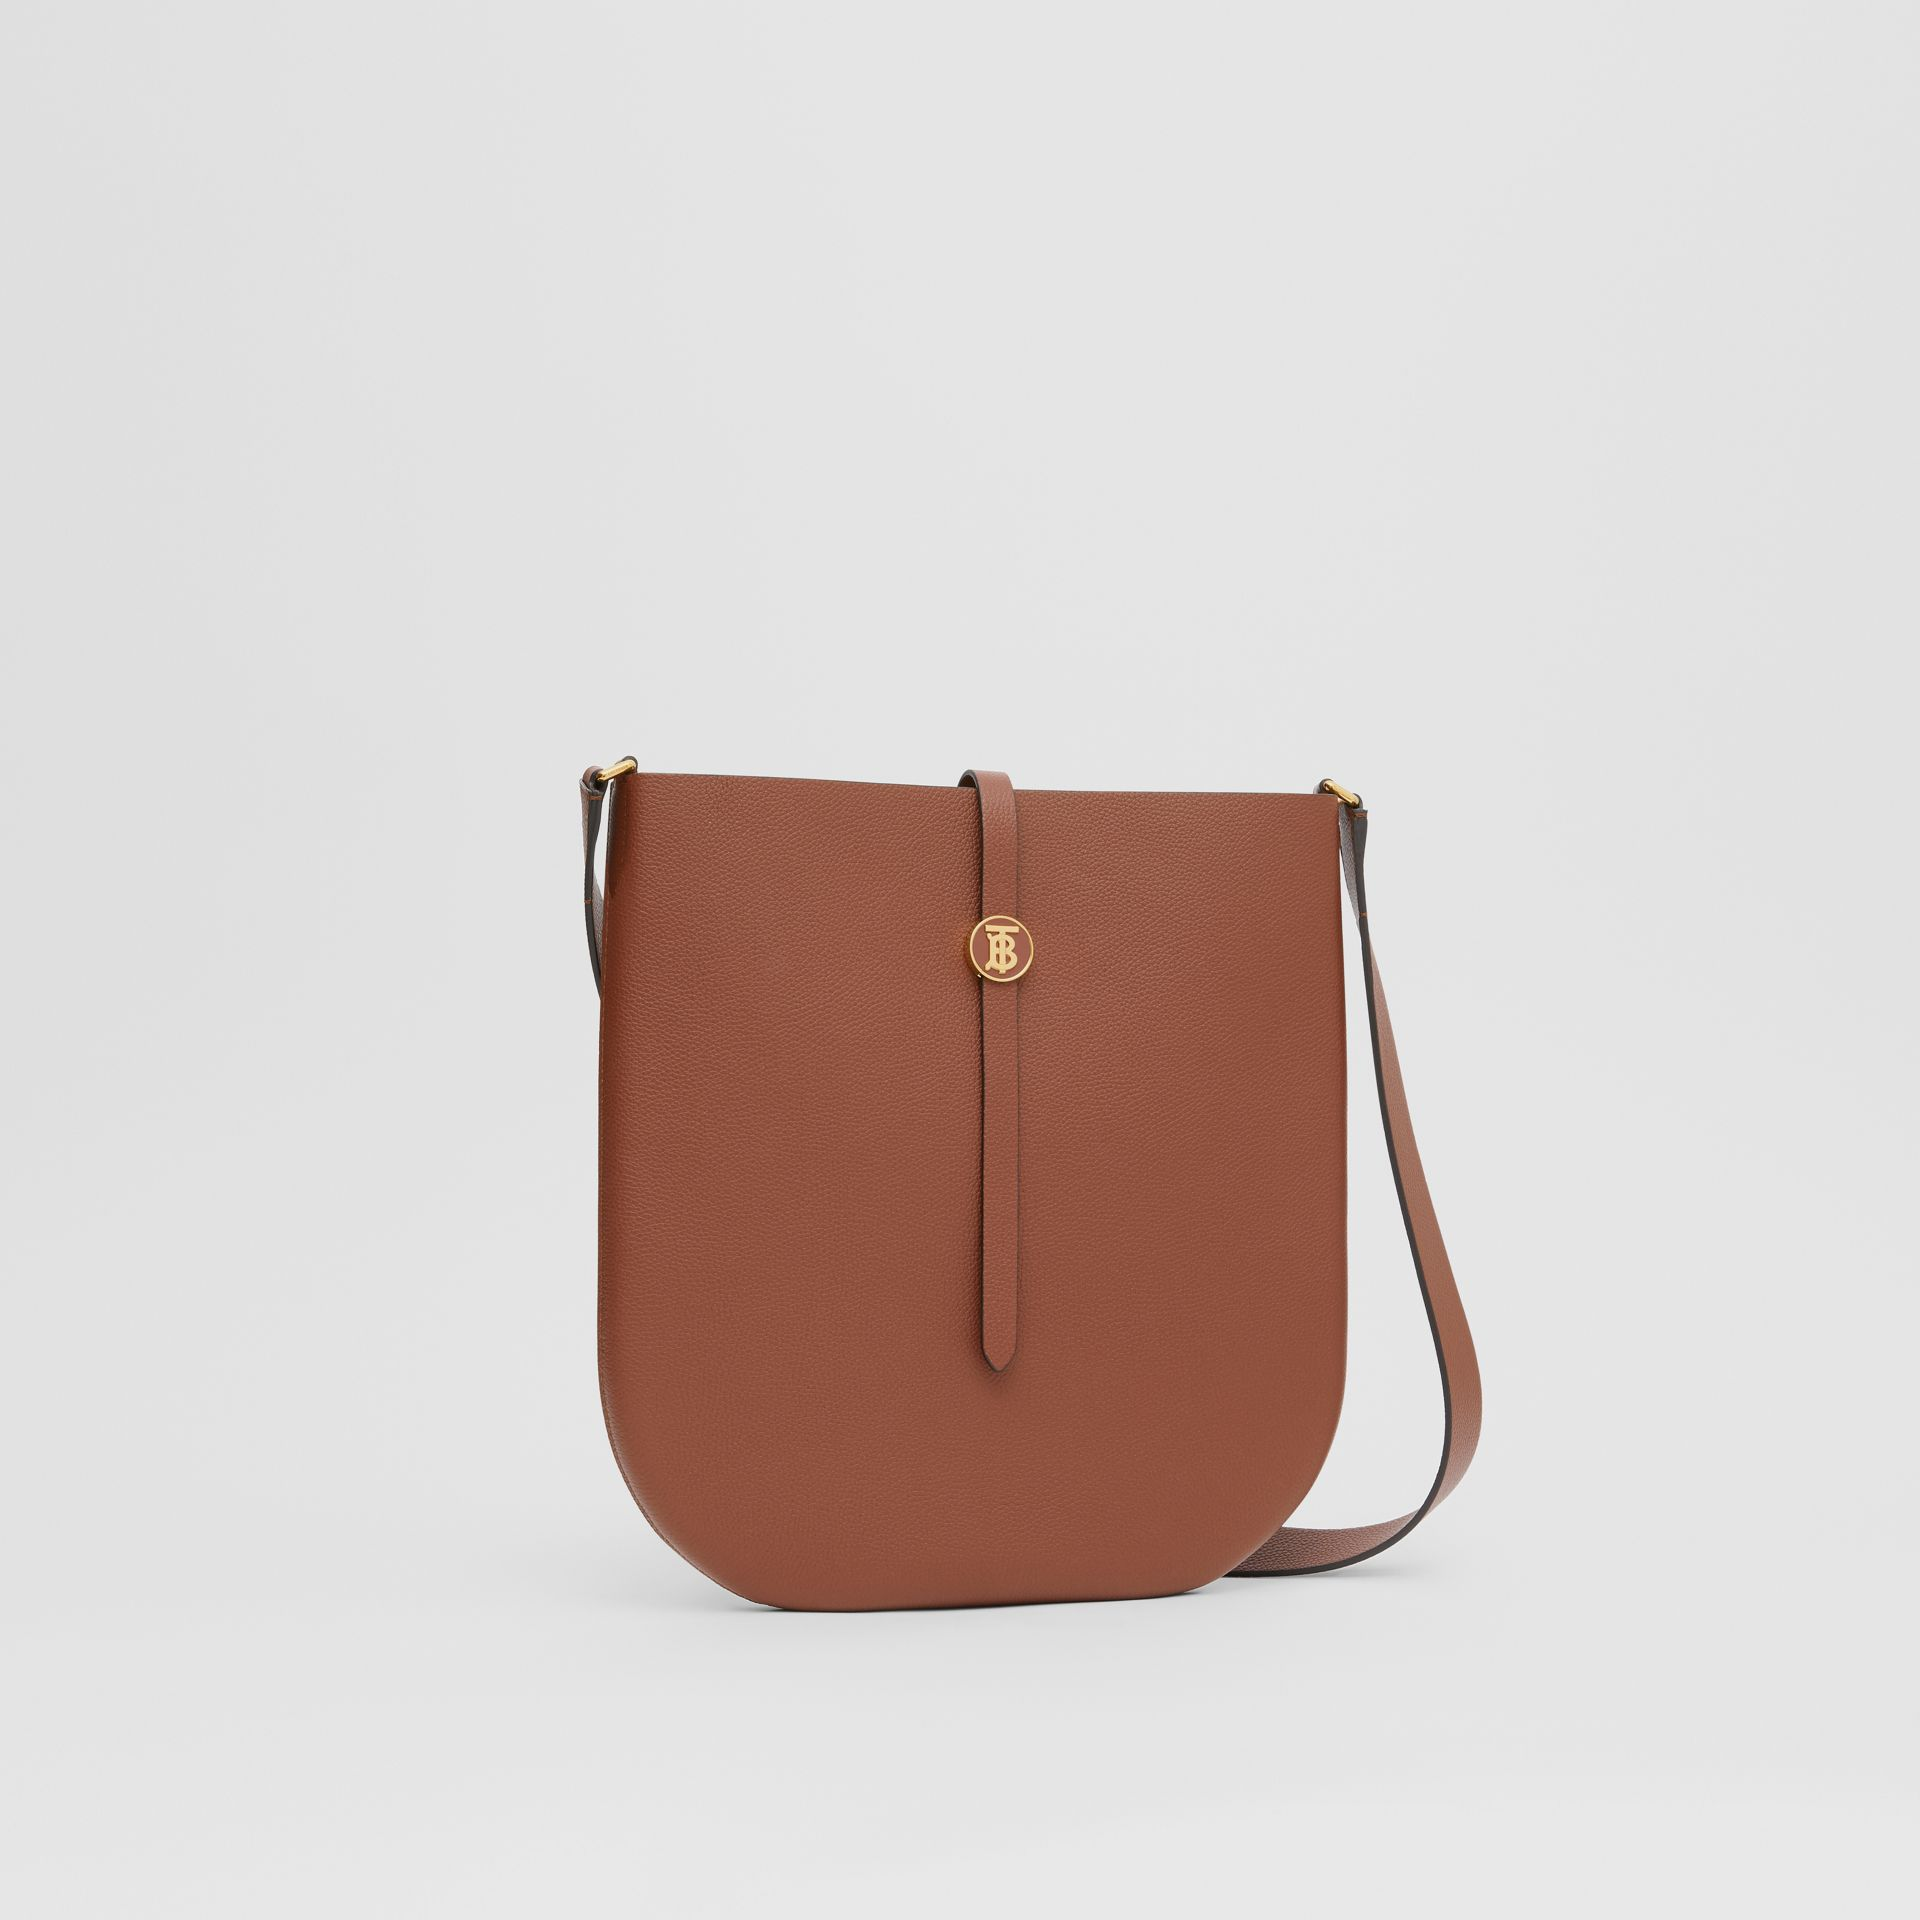 Grainy Leather Anne Bag in Tan - Women | Burberry - gallery image 4